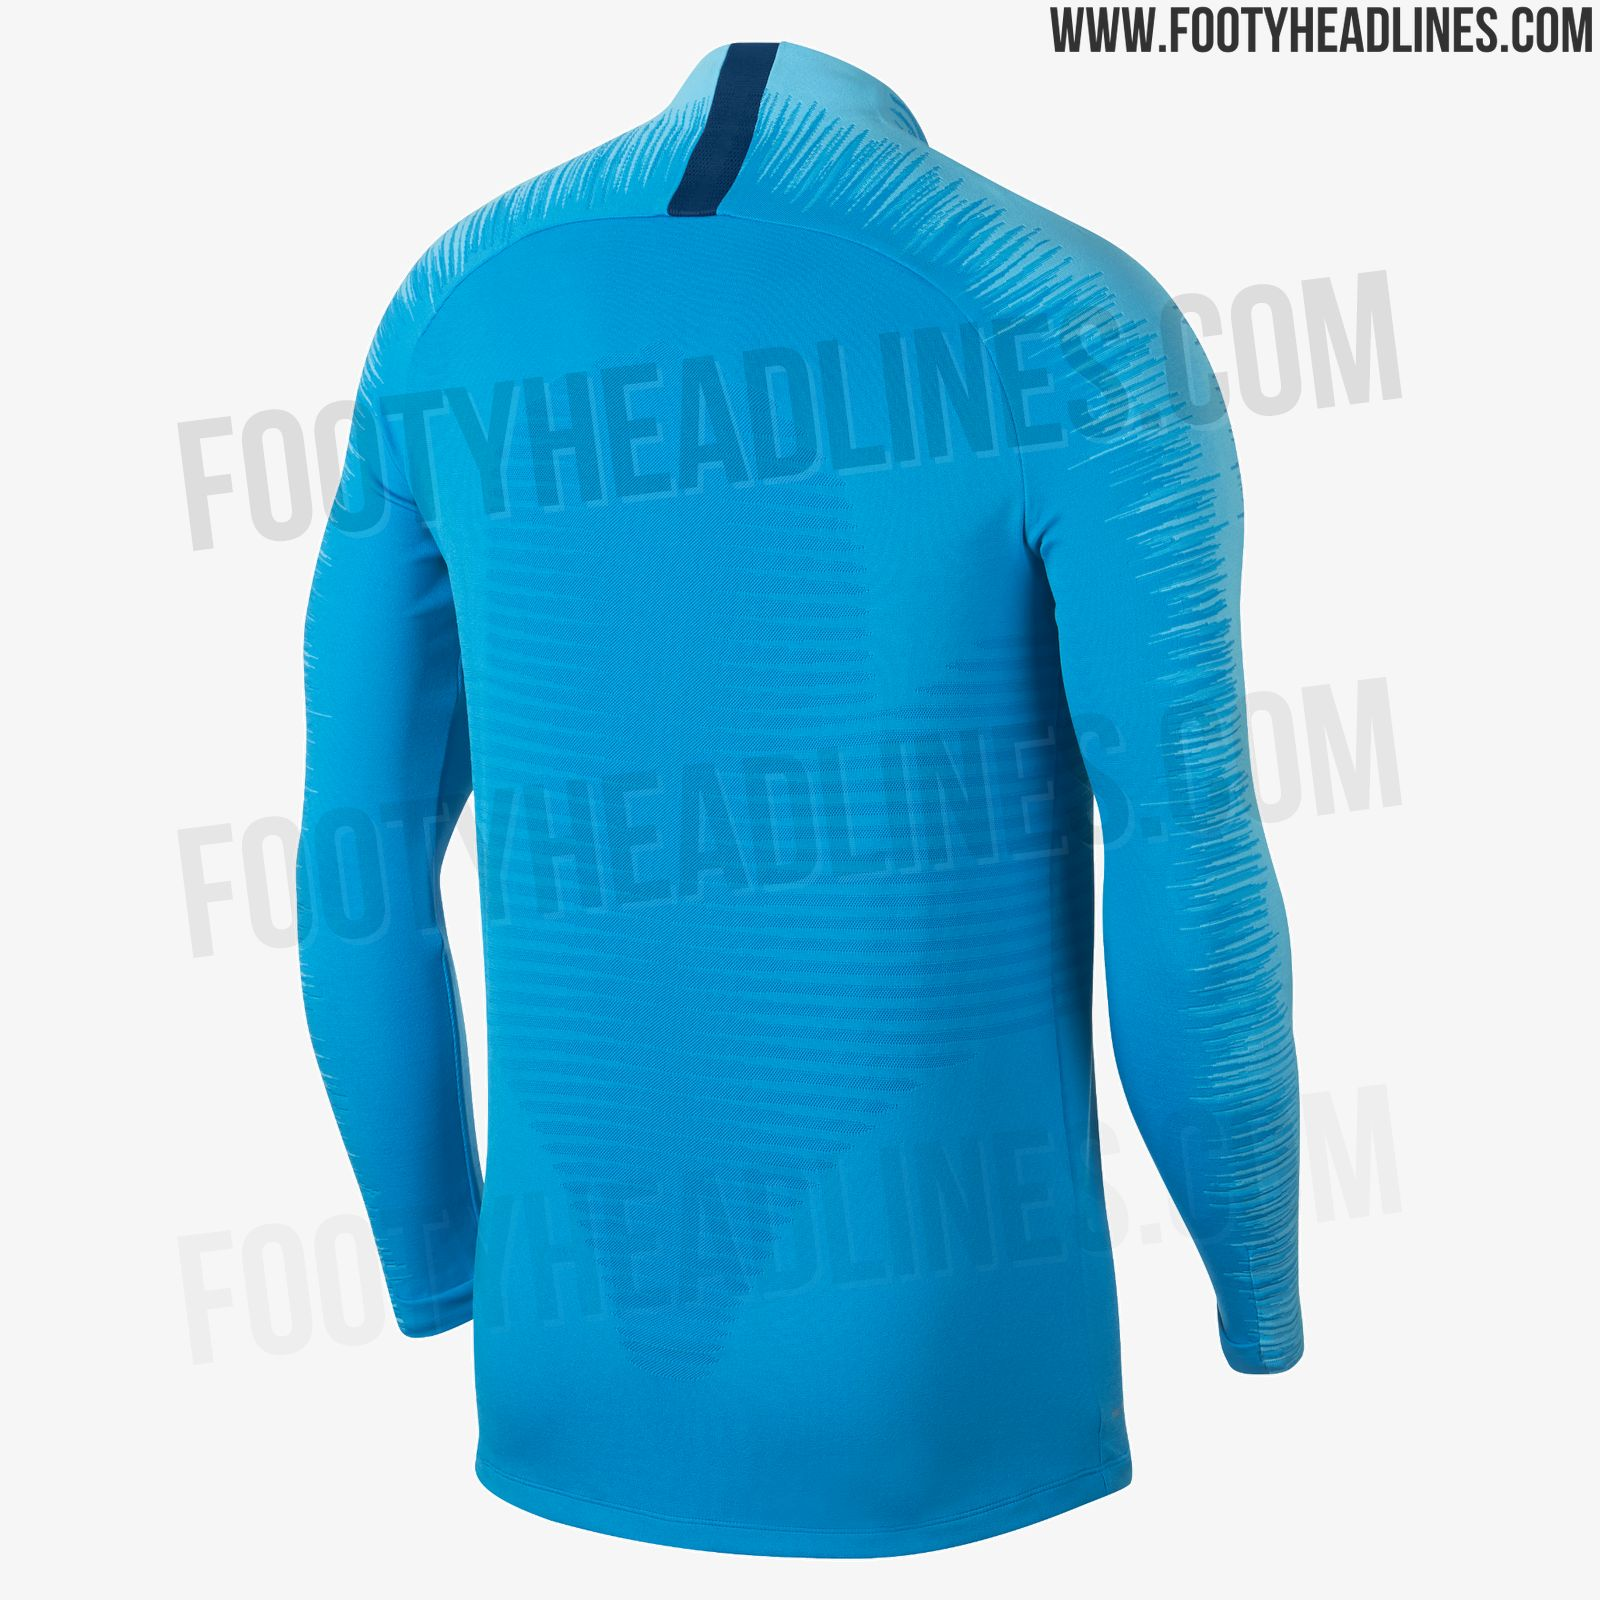 new product 04038 04ff8 NEW Template: Nike Barcelona 2019 Training Kit Leaked ...